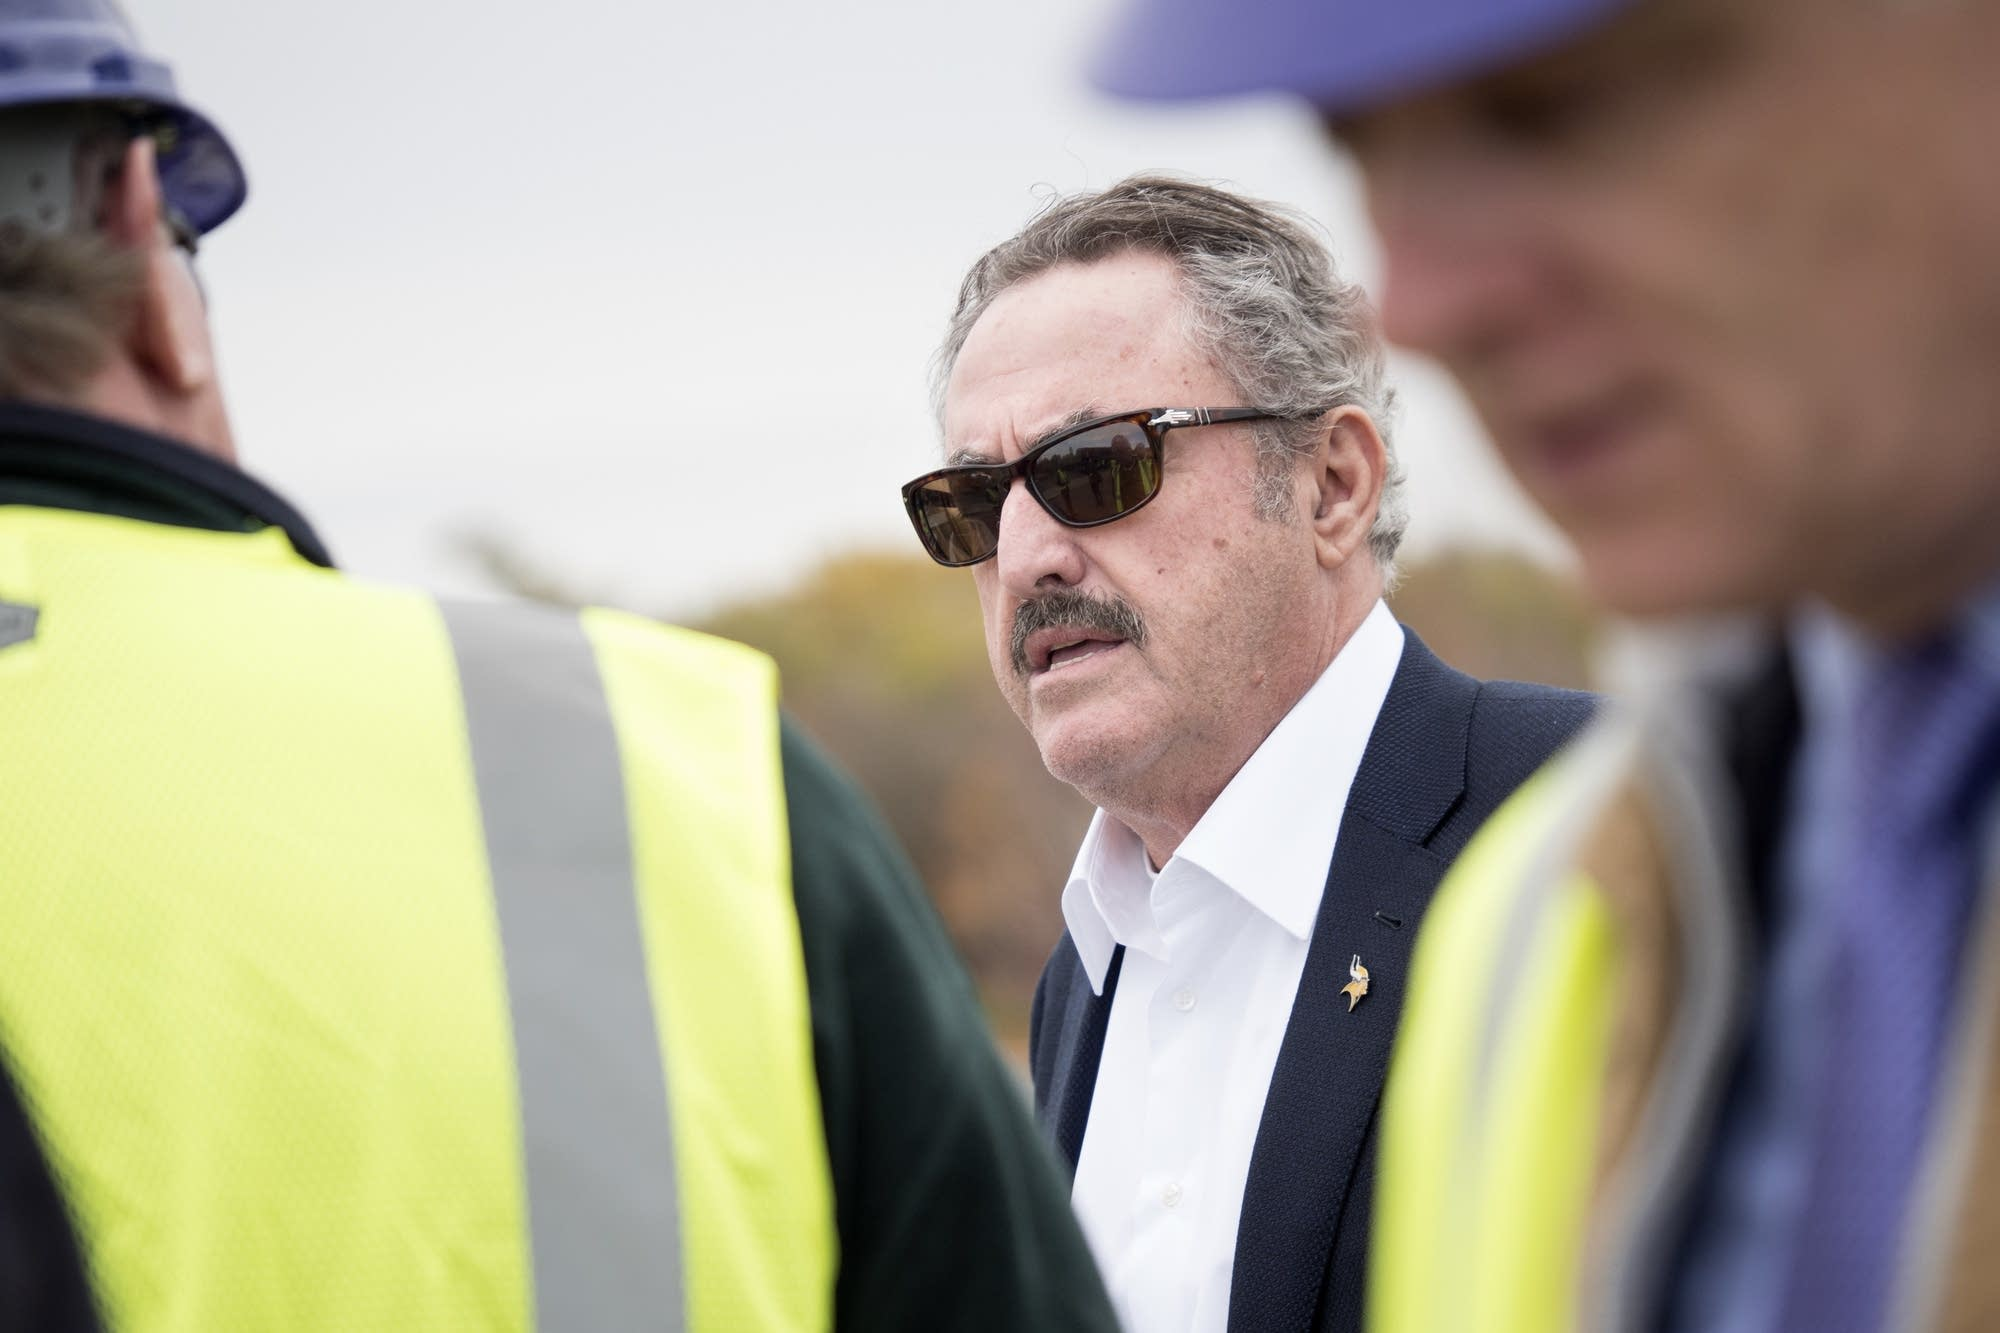 Vikings owner/chairman Zygi Wilf addressed the media during the tour.